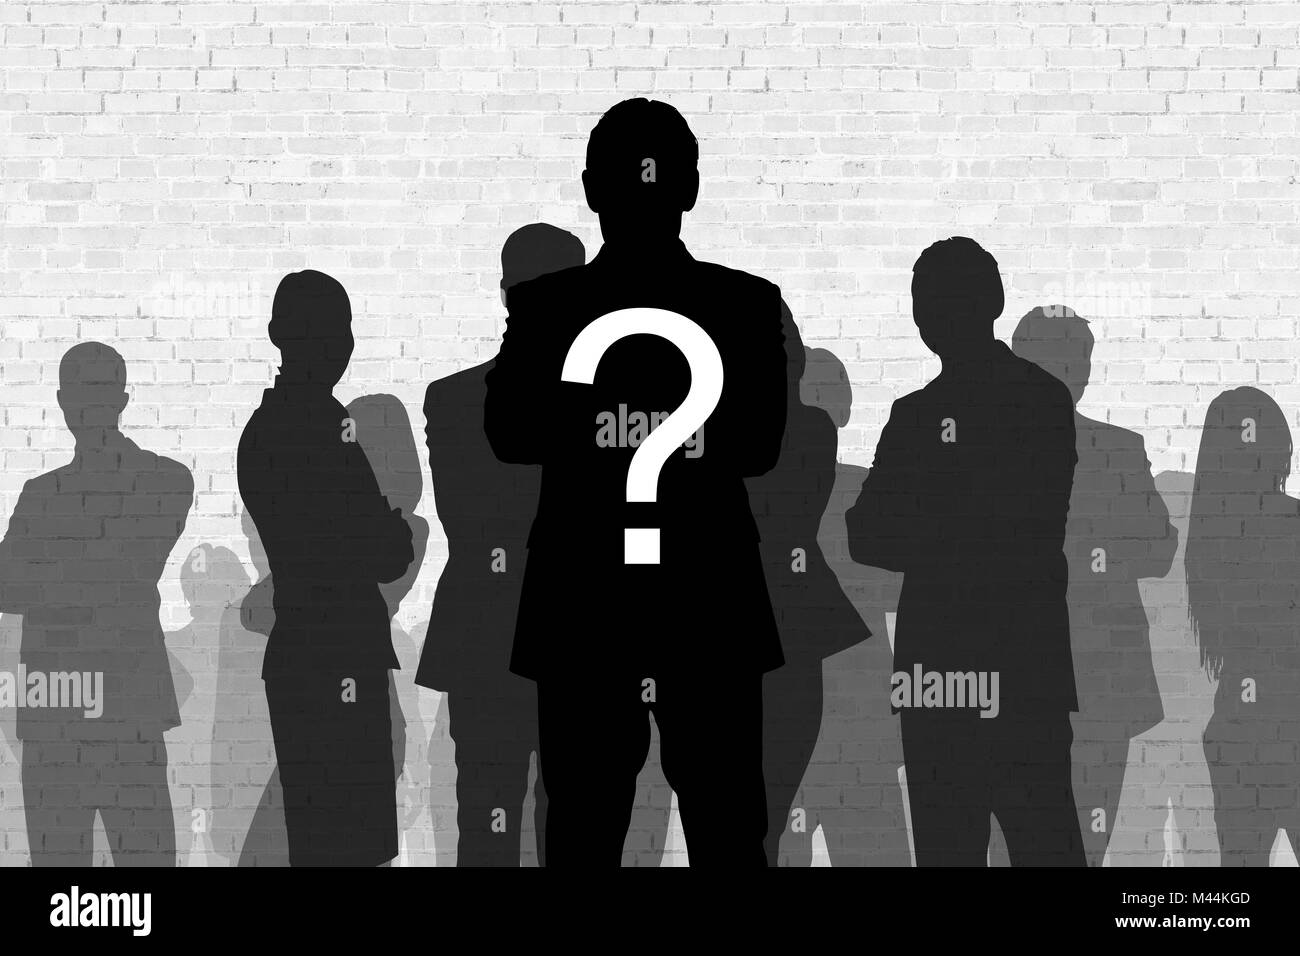 Question mark on silhouette businessman standing in front of colleagues against wall - Stock Image